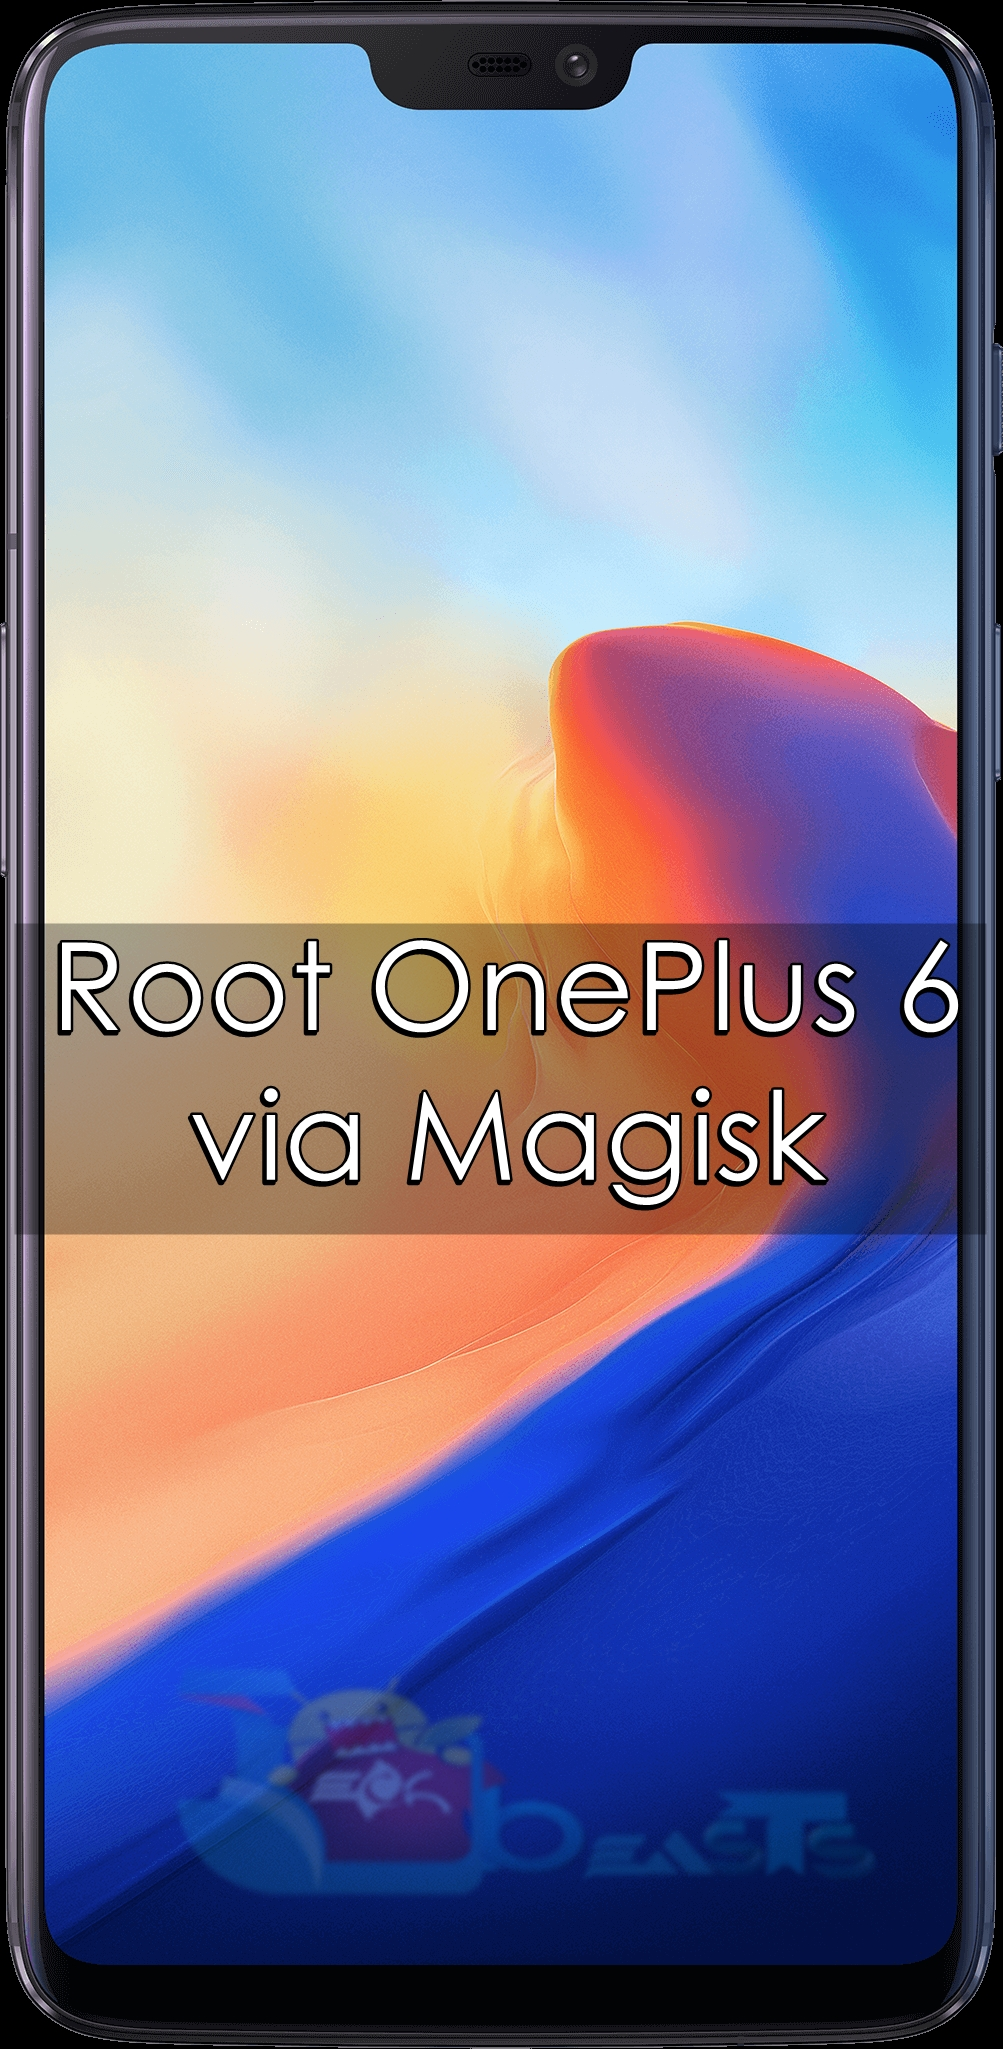 How to Root OnePlus 6 via Magisk